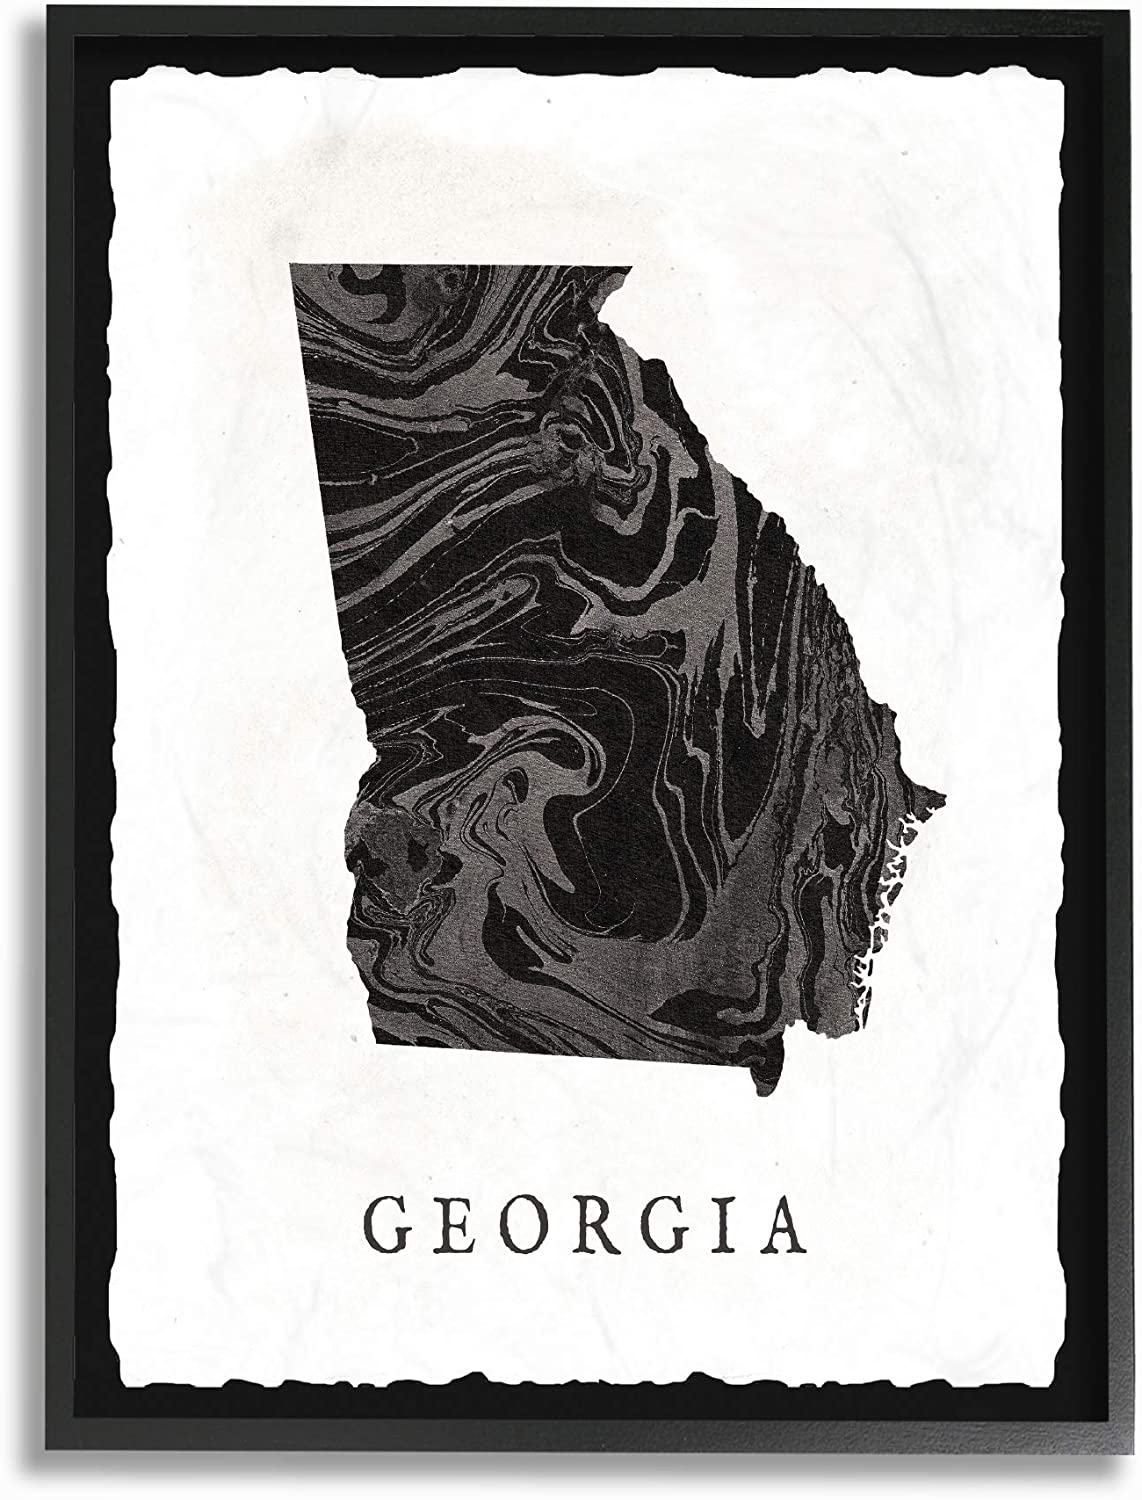 Stupell Industries Home Black and Grey Marbled Paper Georgia State Silhouette Framed Giclee Texturized Art, Multi-color